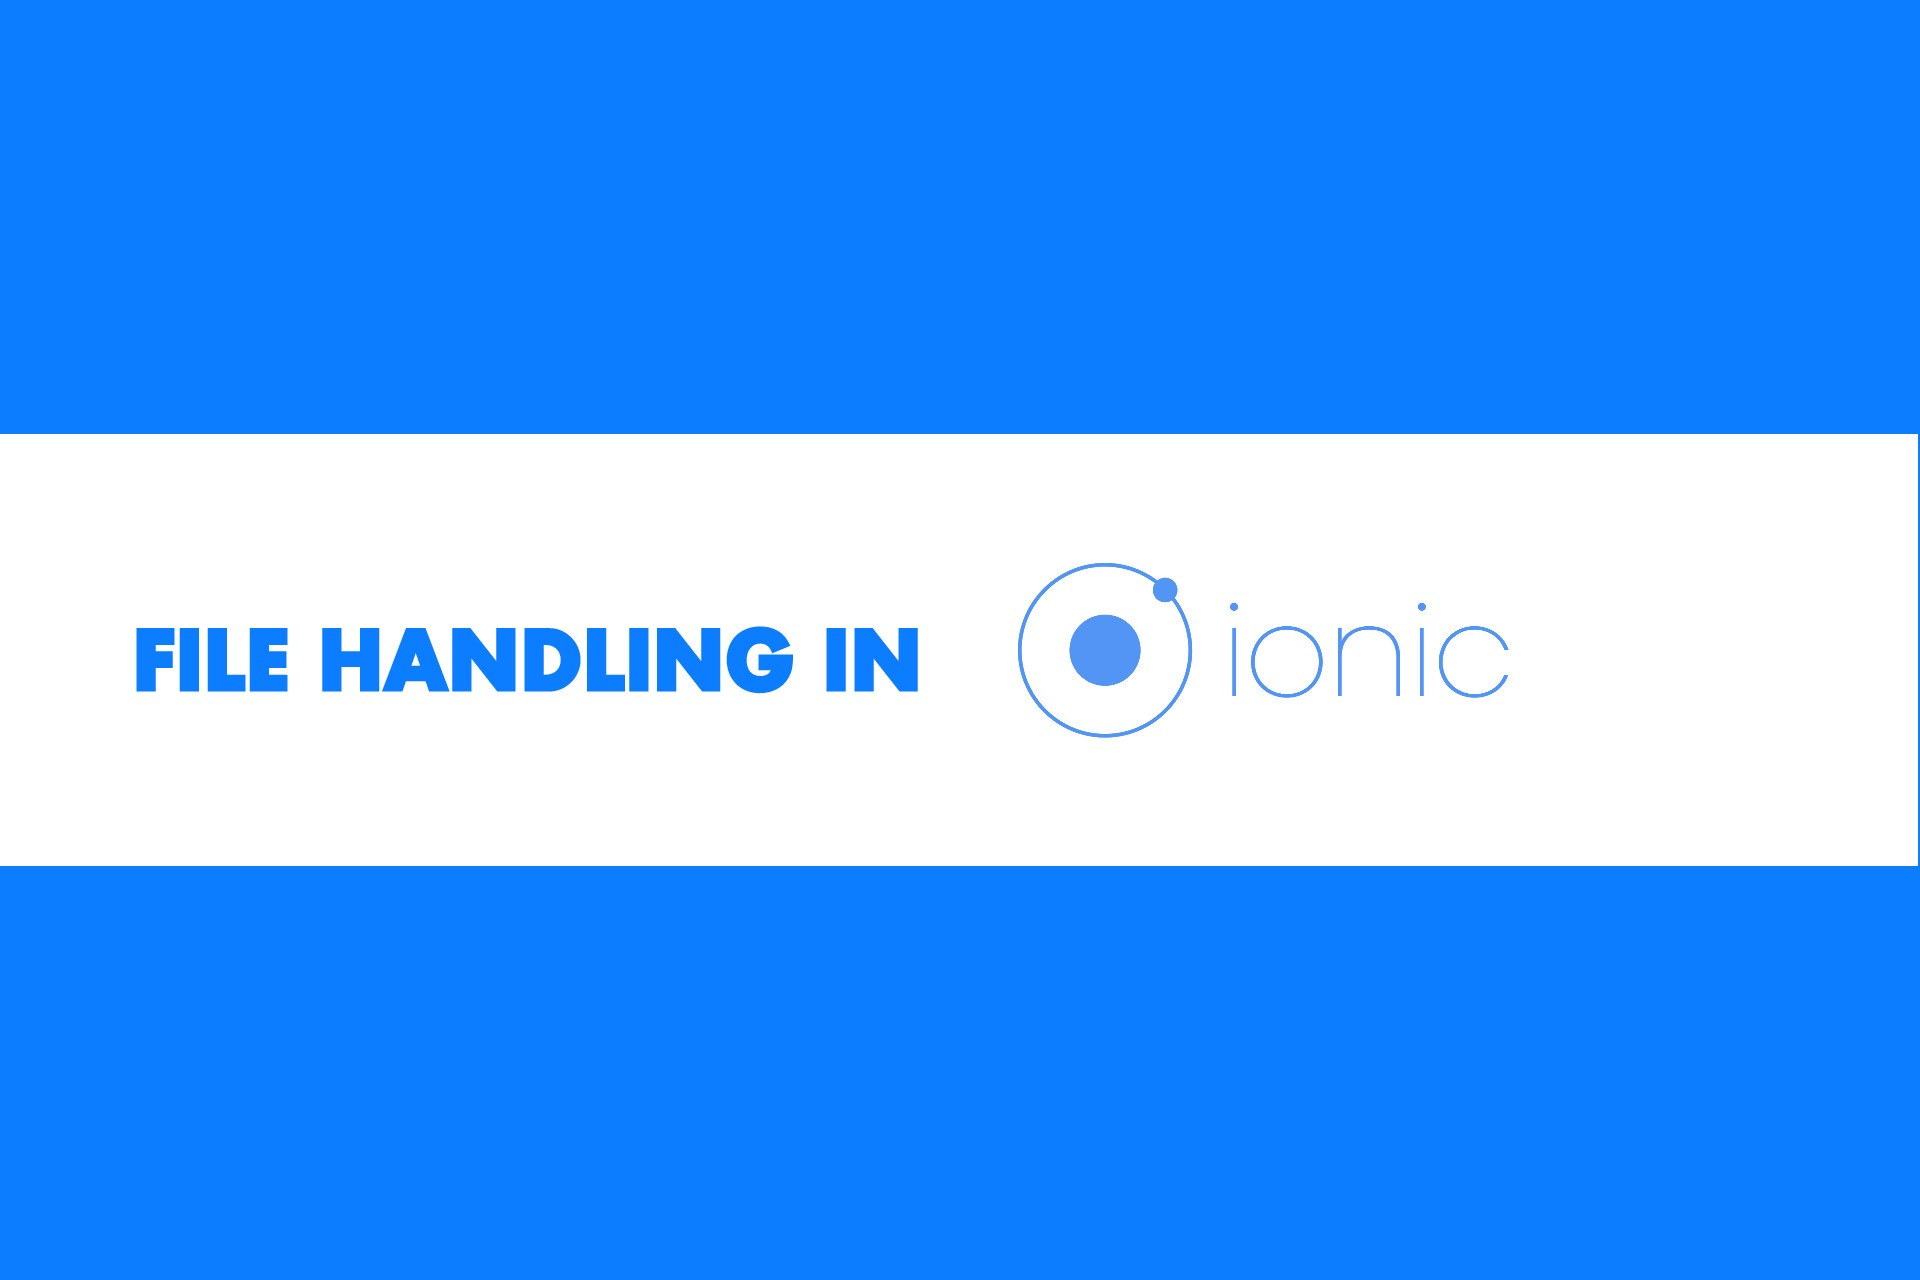 Complete guide of File handling in Ionic - _devblogs - Medium